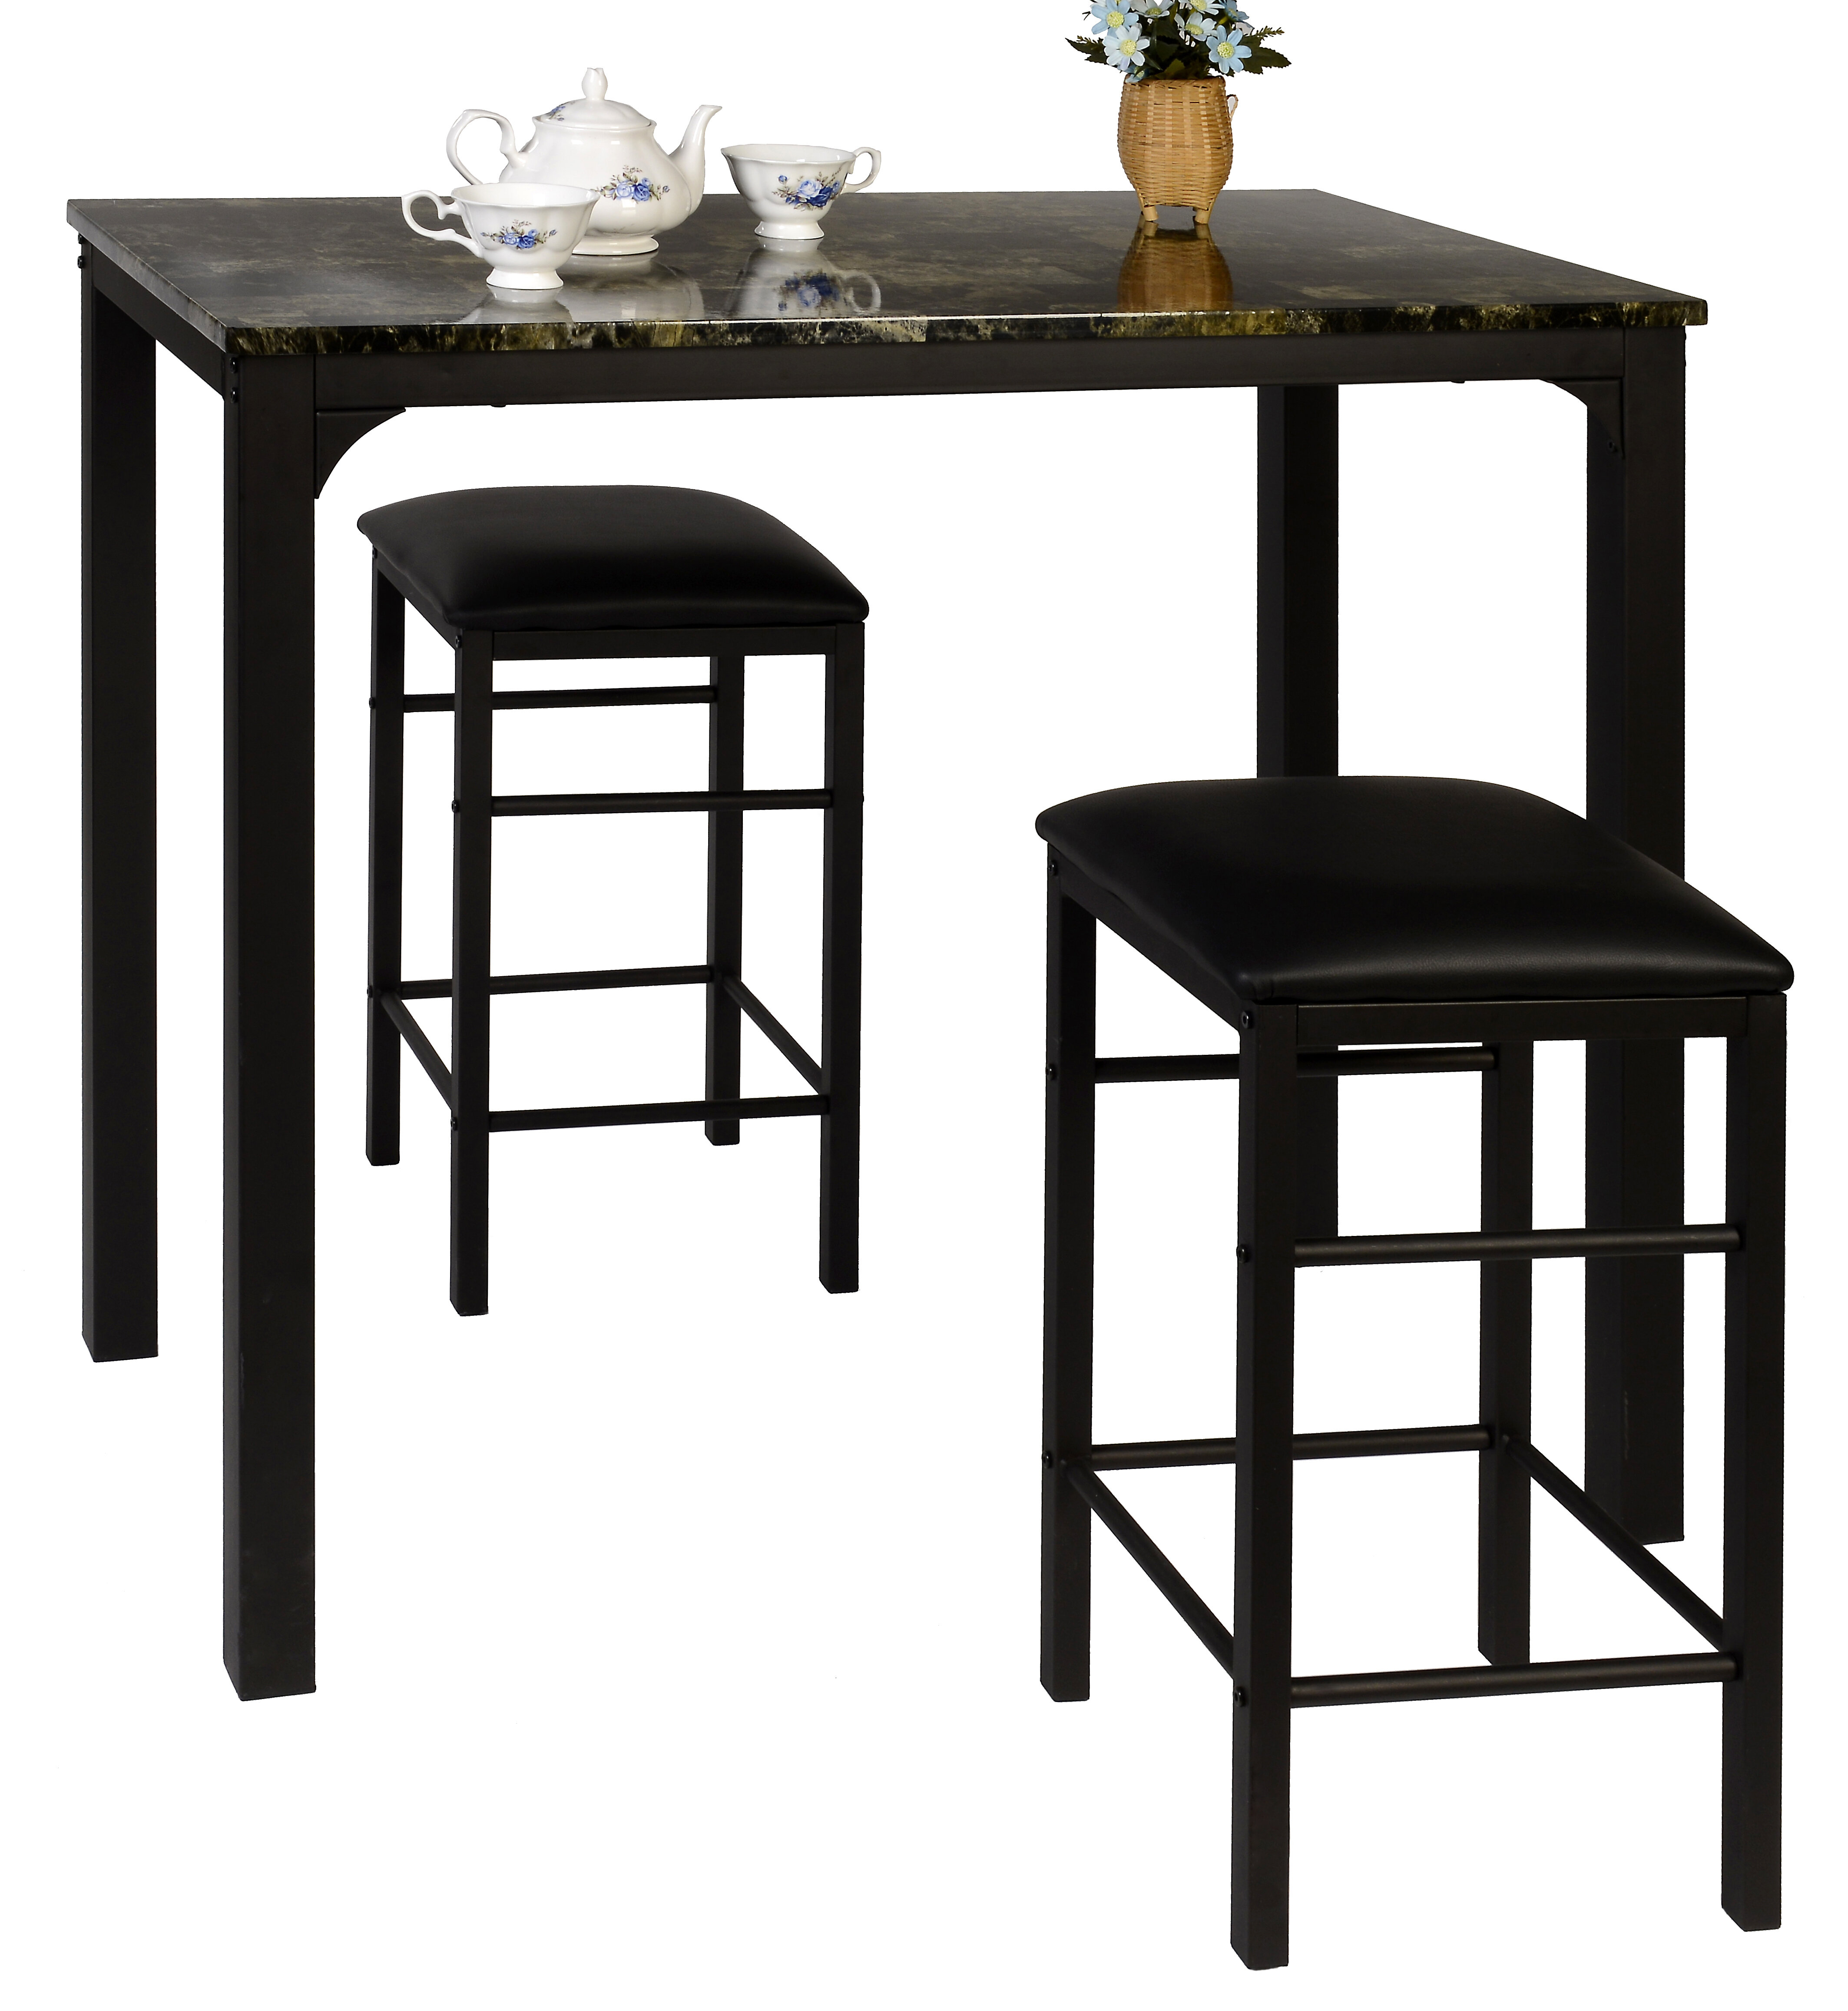 Wayfair Intended For Miskell 3 Piece Dining Sets (View 2 of 20)